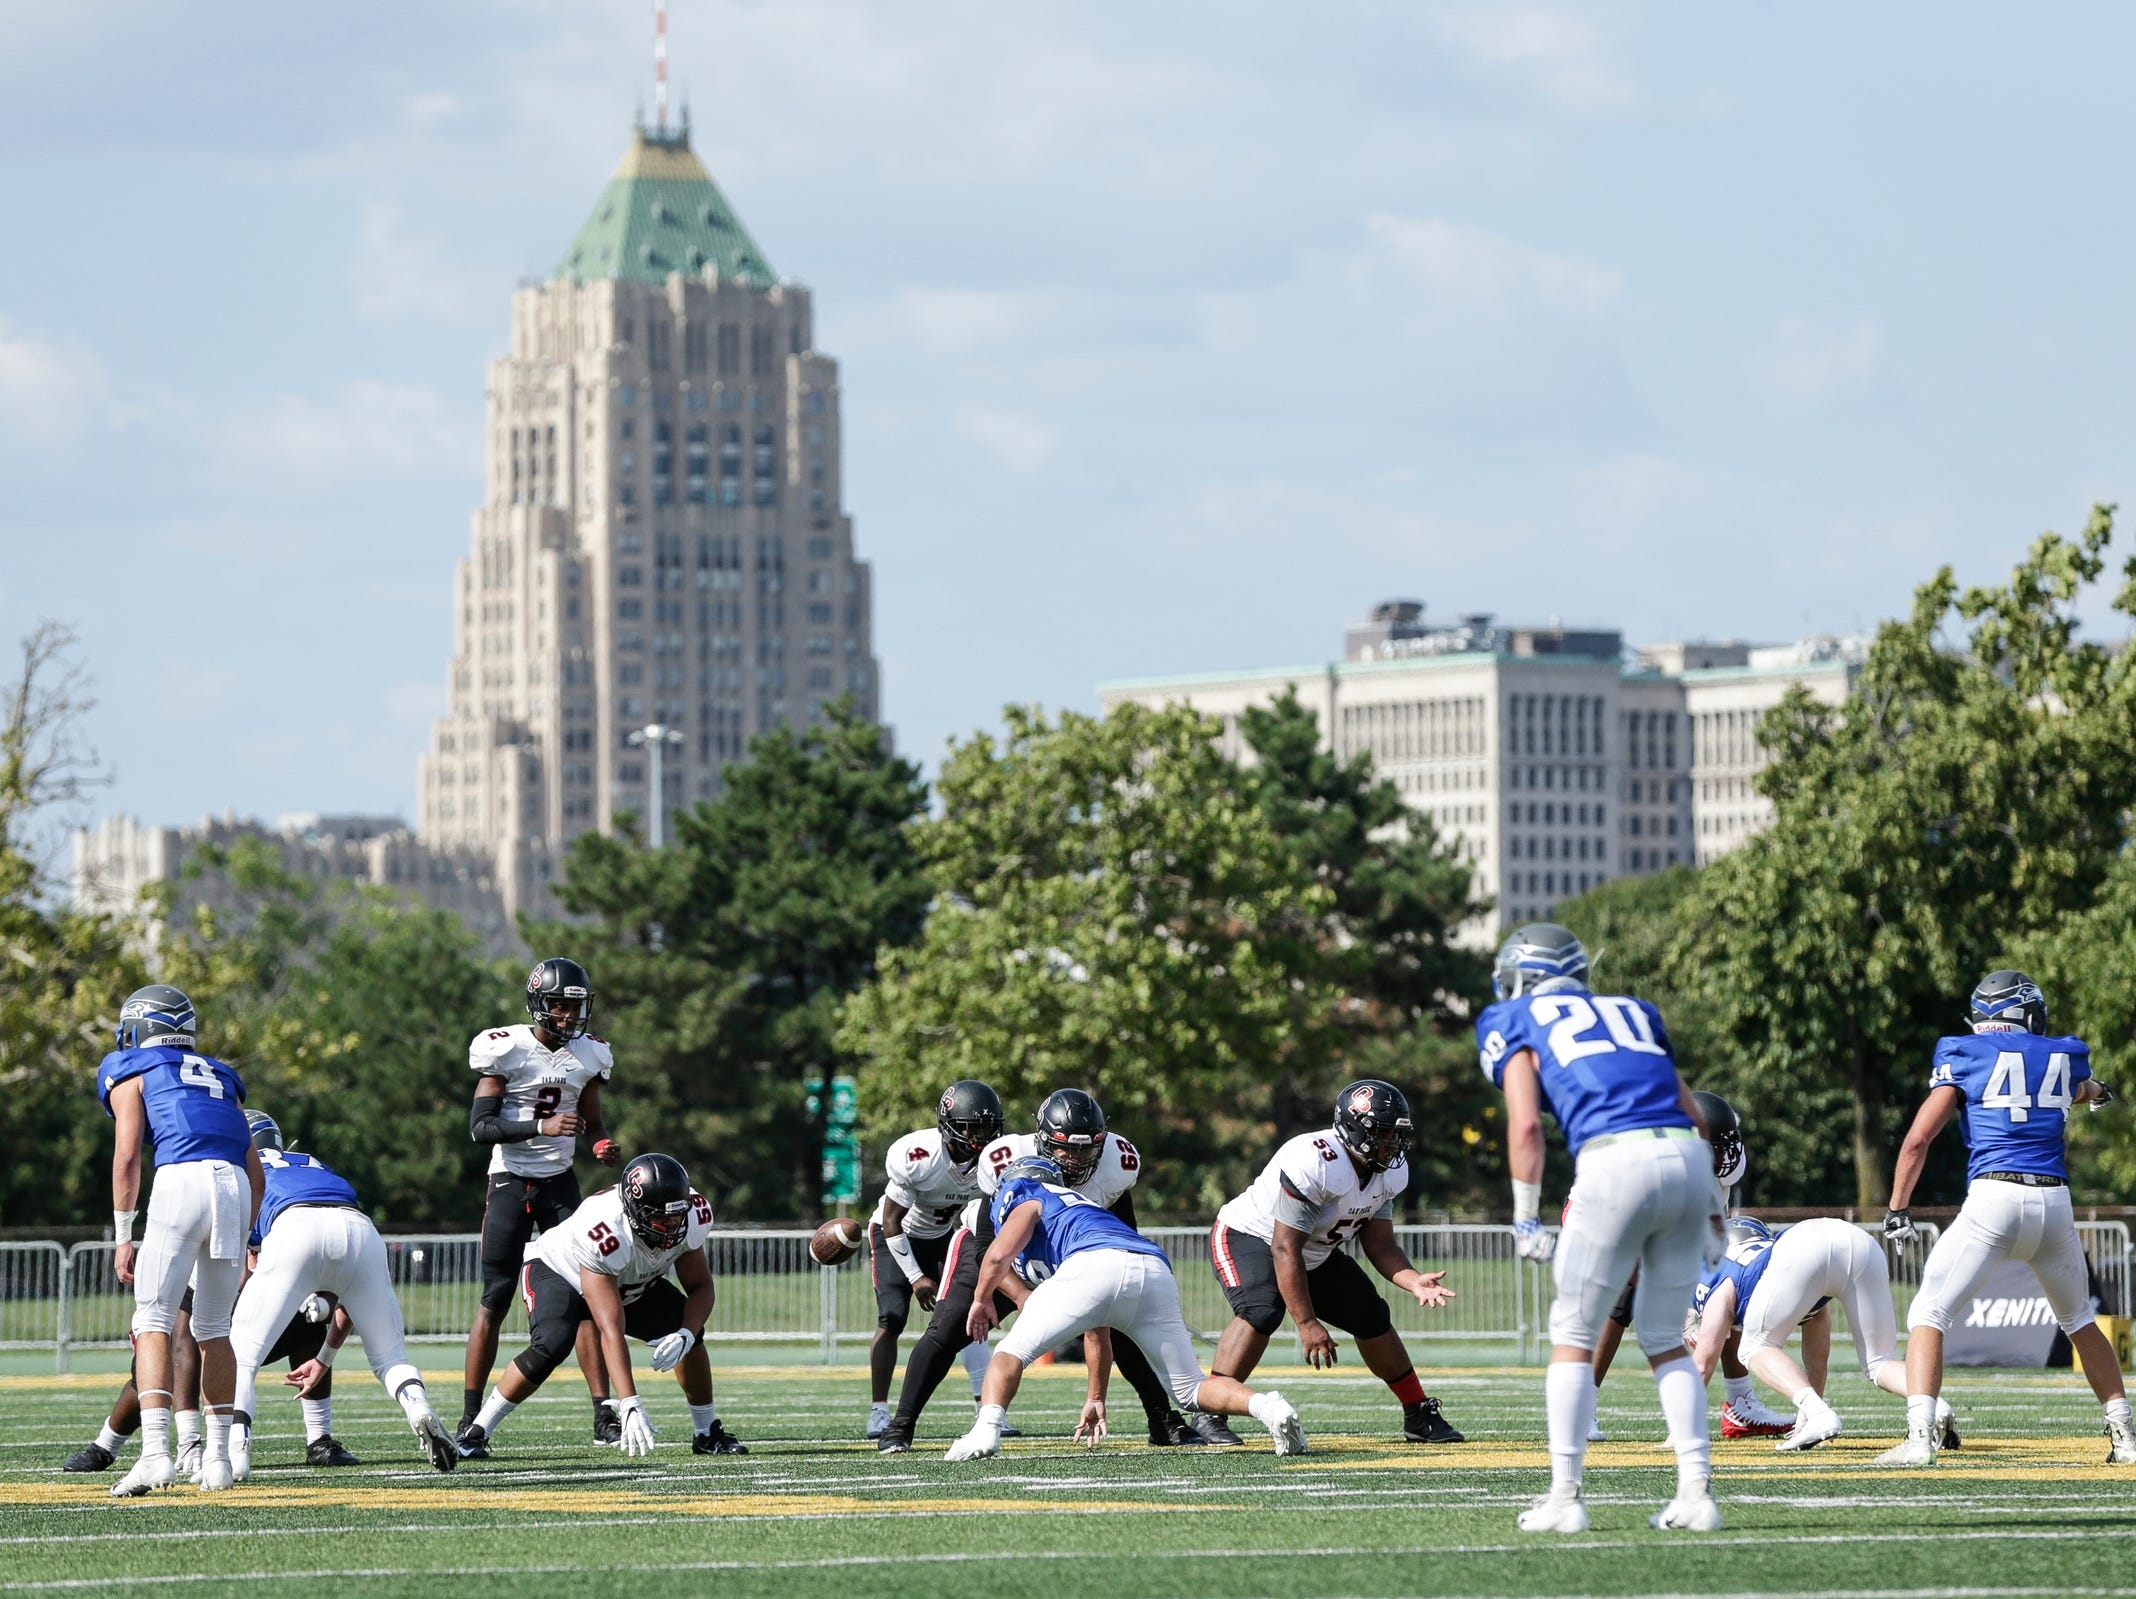 Oak Park faces Utica Eisenhower during the first half of a Prep Kickoff Classic game at Wayne State University's Tom Adams Field in Detroit, Thursday, August 23, 2018.